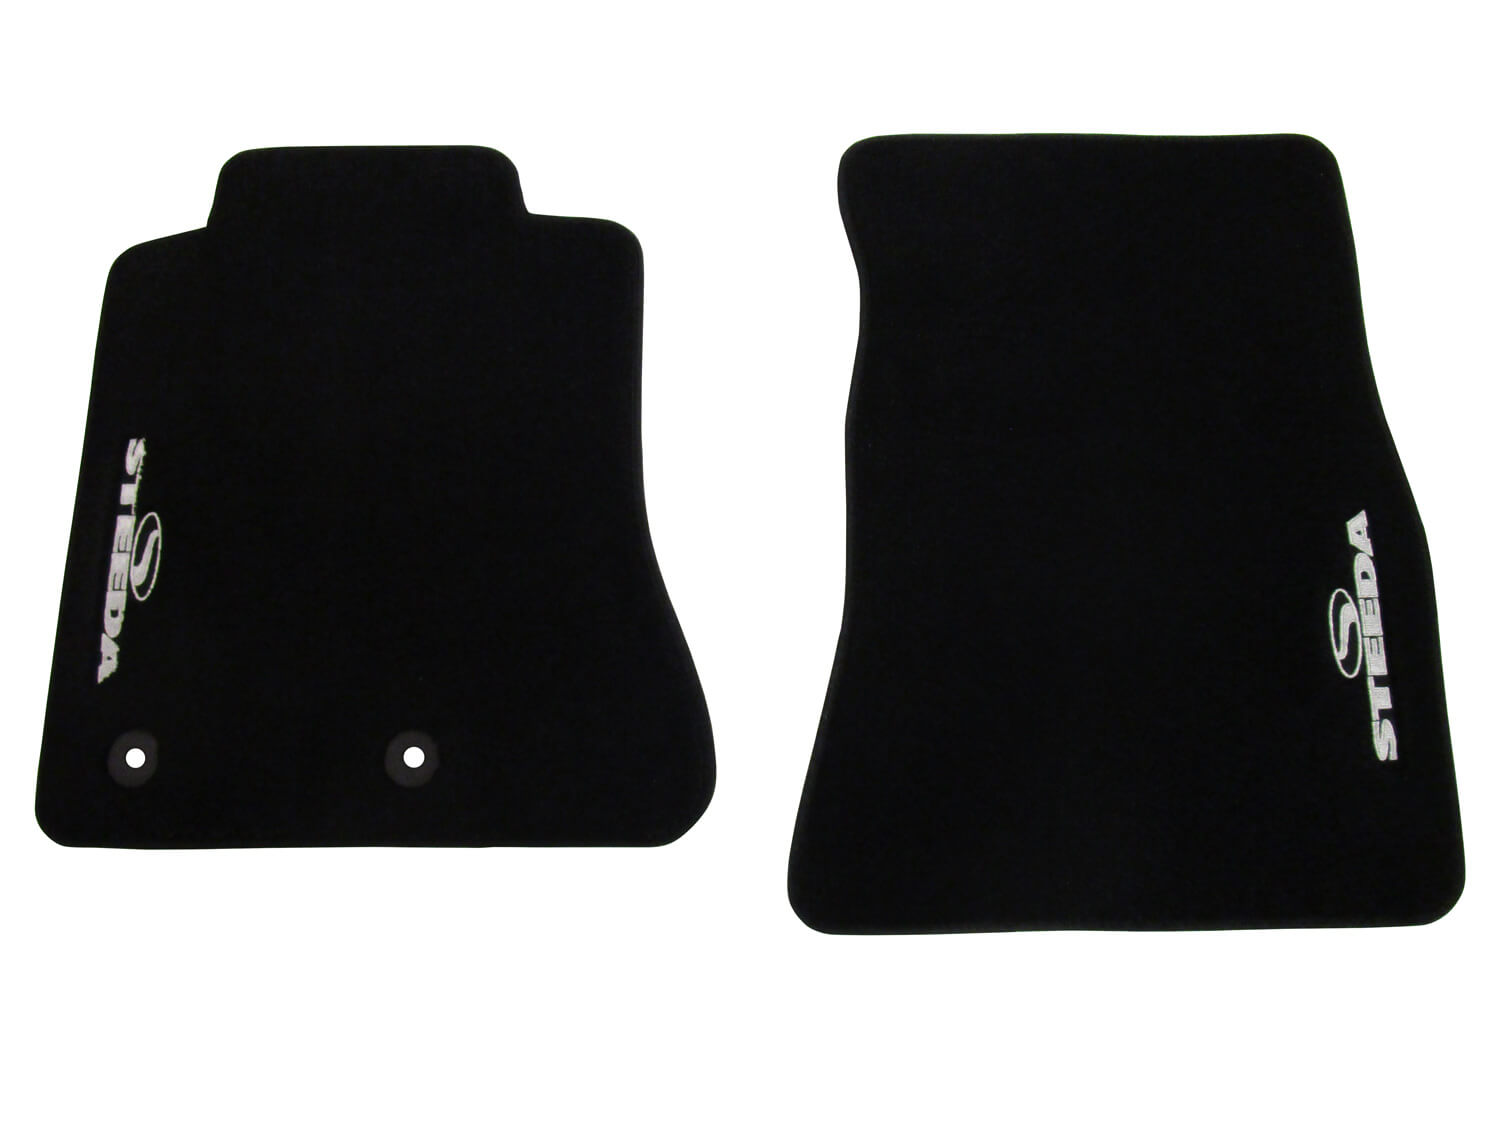 Floor Mats; Accessories; Steeda carries a wide-range of accessories for your Mustang using only the highest quality materials. From Mustang gauges, floor mats and tool kits to seats, brackets and lights, we offer these items as a convenience to our customers.